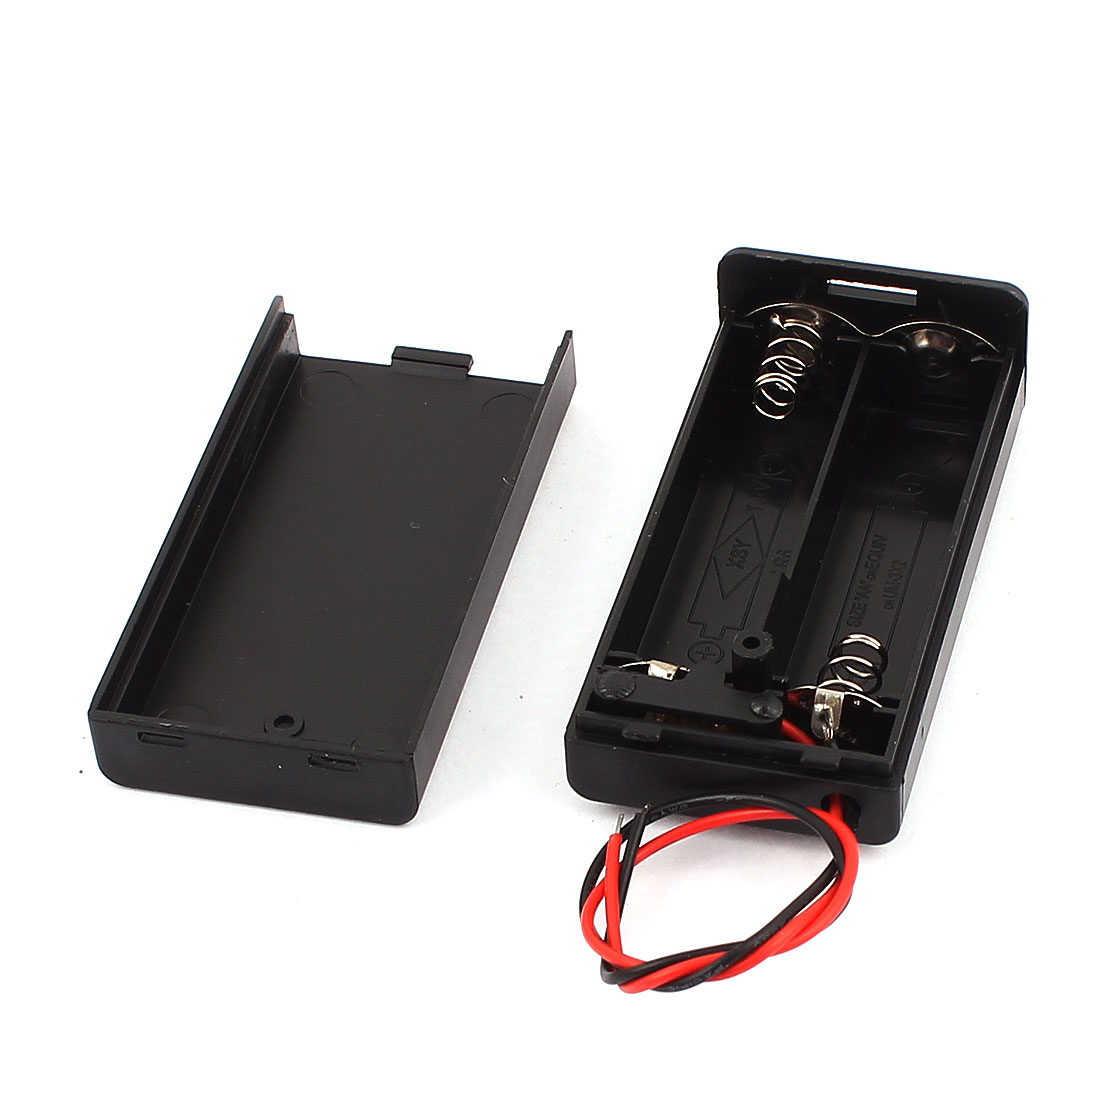 Black Plastic Housing ON/OFF Switch 2x1.5V AA Battery Holder Storage Container Case Box